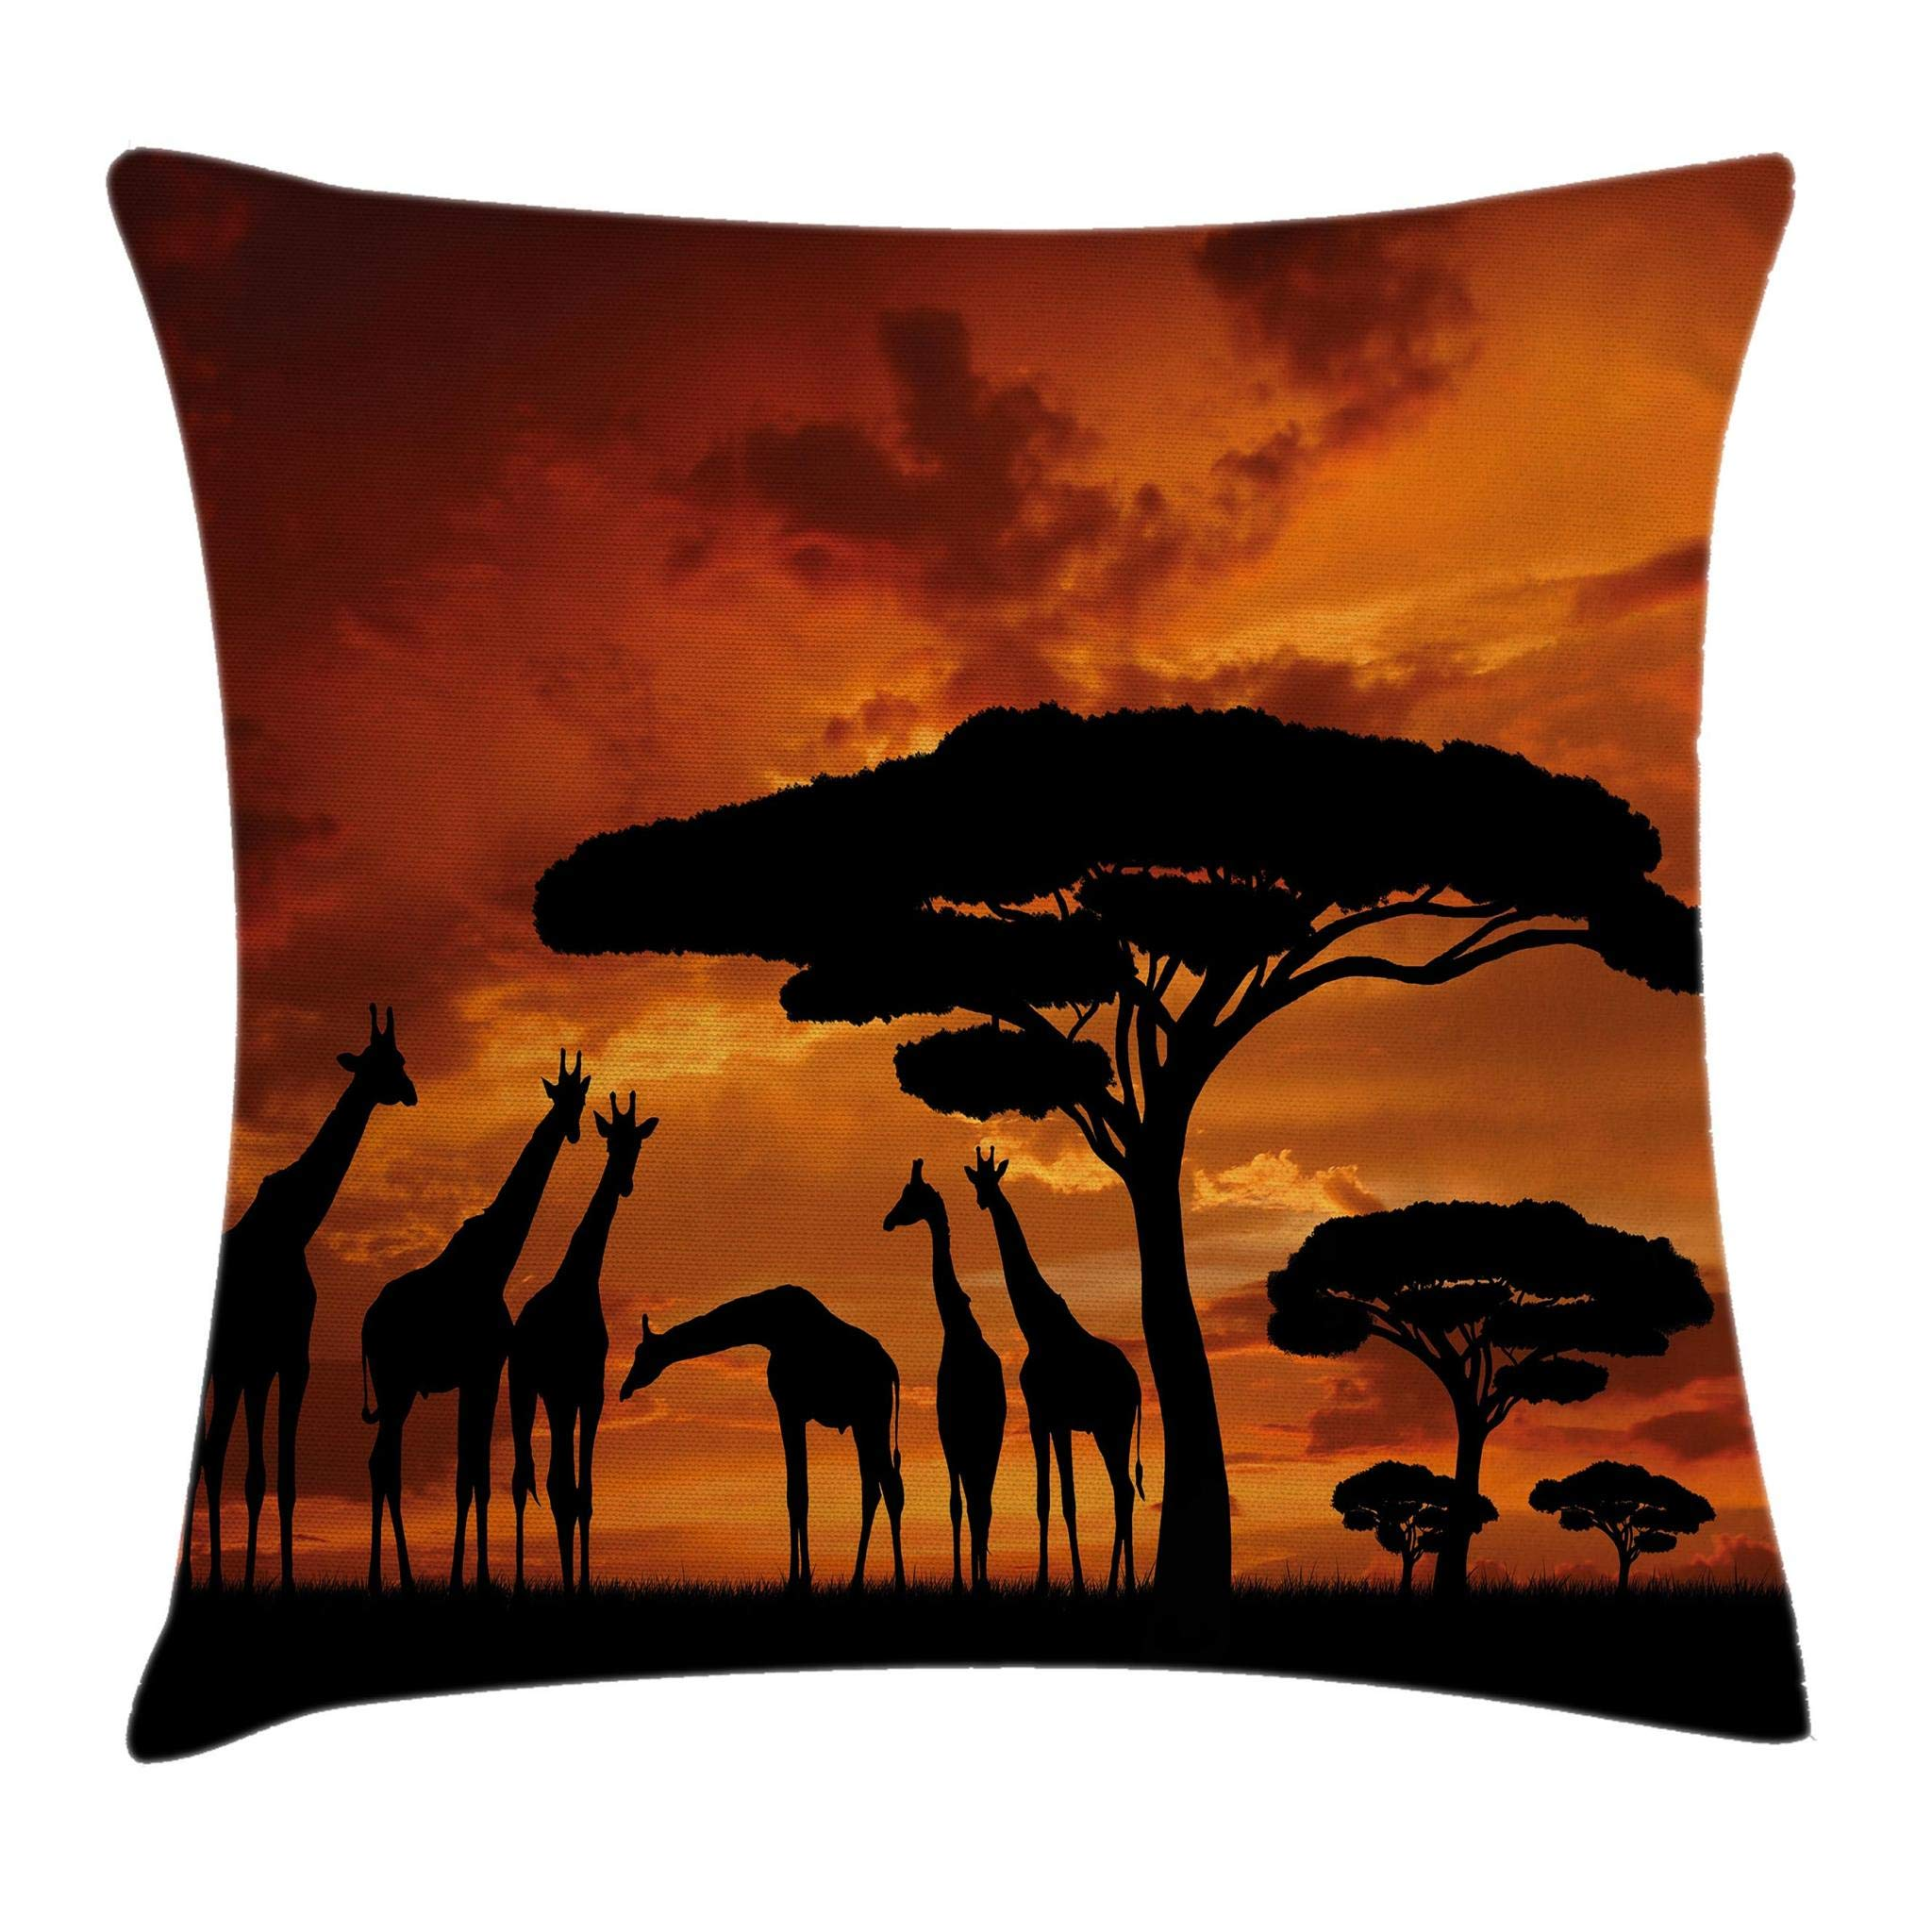 Ambesonne Wildlife Decor Throw Pillow Cushion Cover, Safari with Giraffe Crew with Majestic Tree at Sunrise in Kenya, Decorative Square Accent Pillow Case, 18 X 18 Inches, Burnt Orange Black